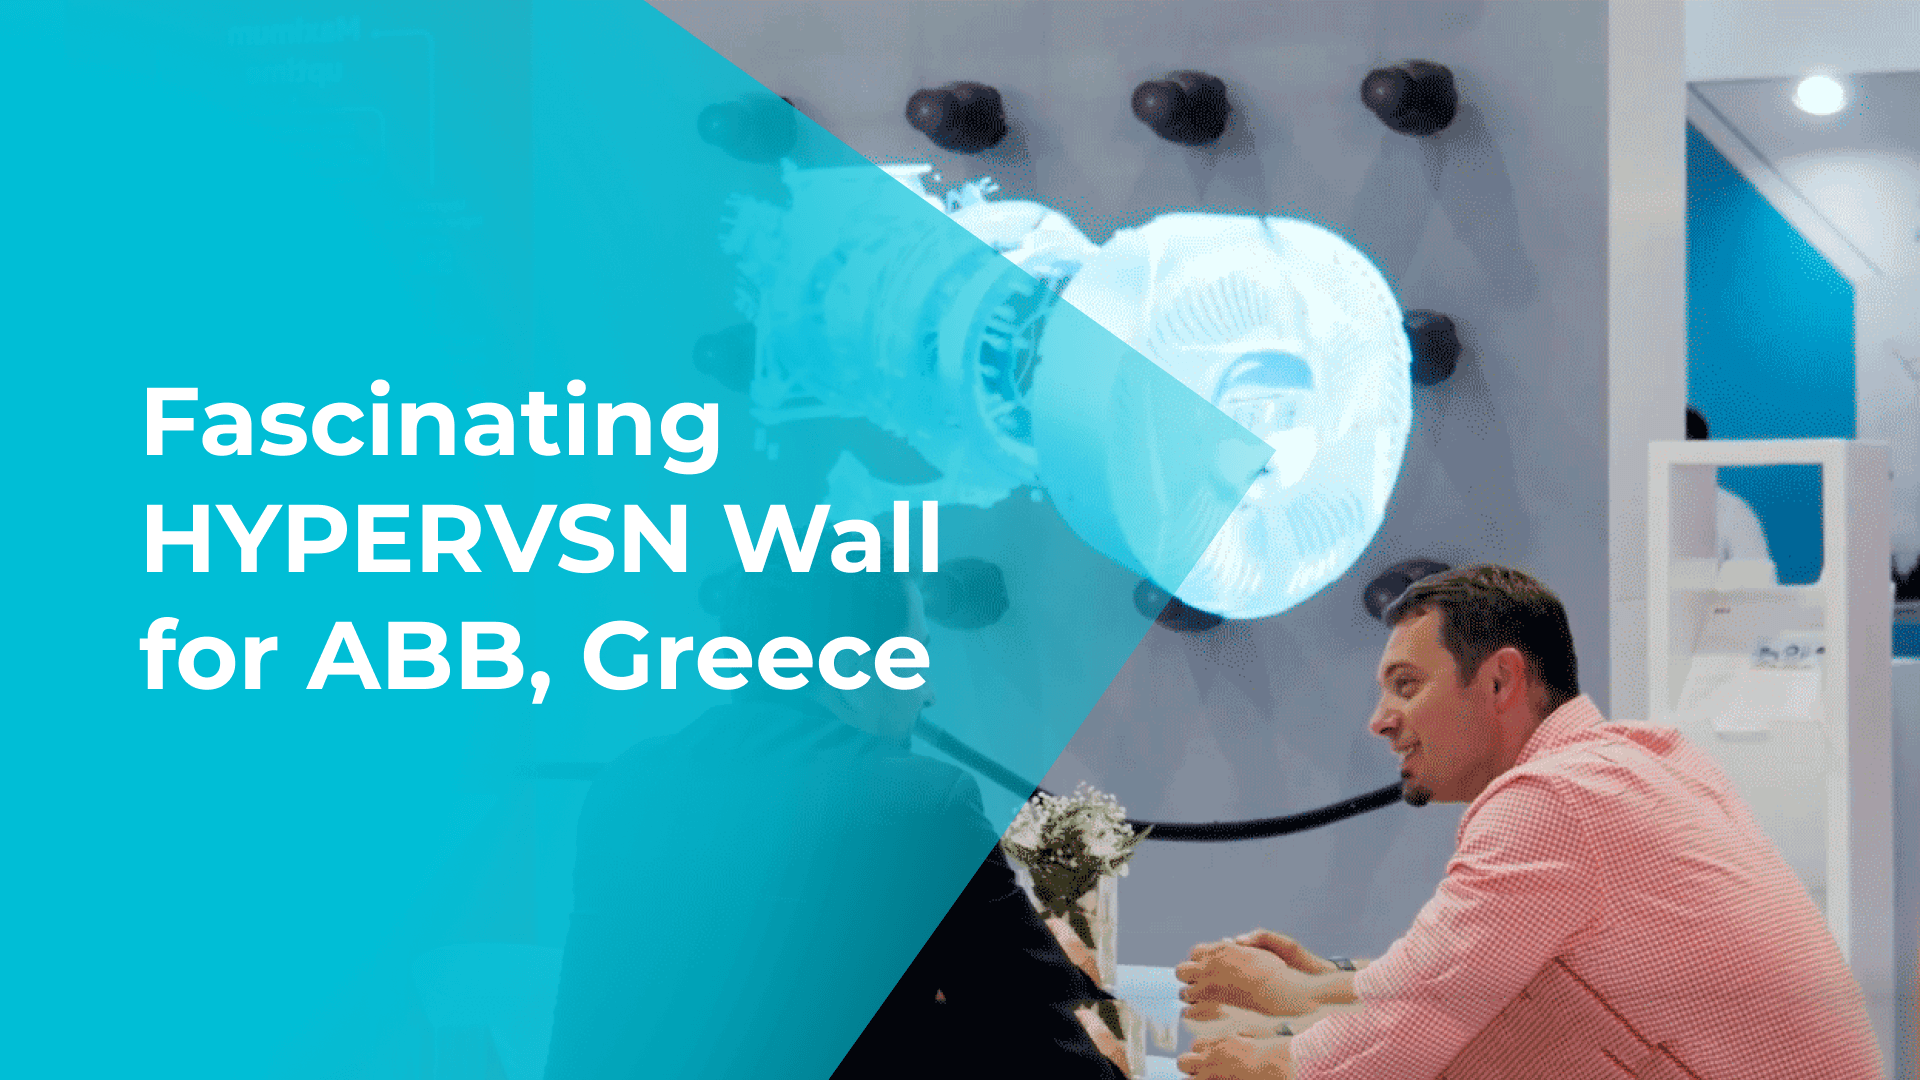 Fascinating HYPERVSN Wall for ABB, Greece